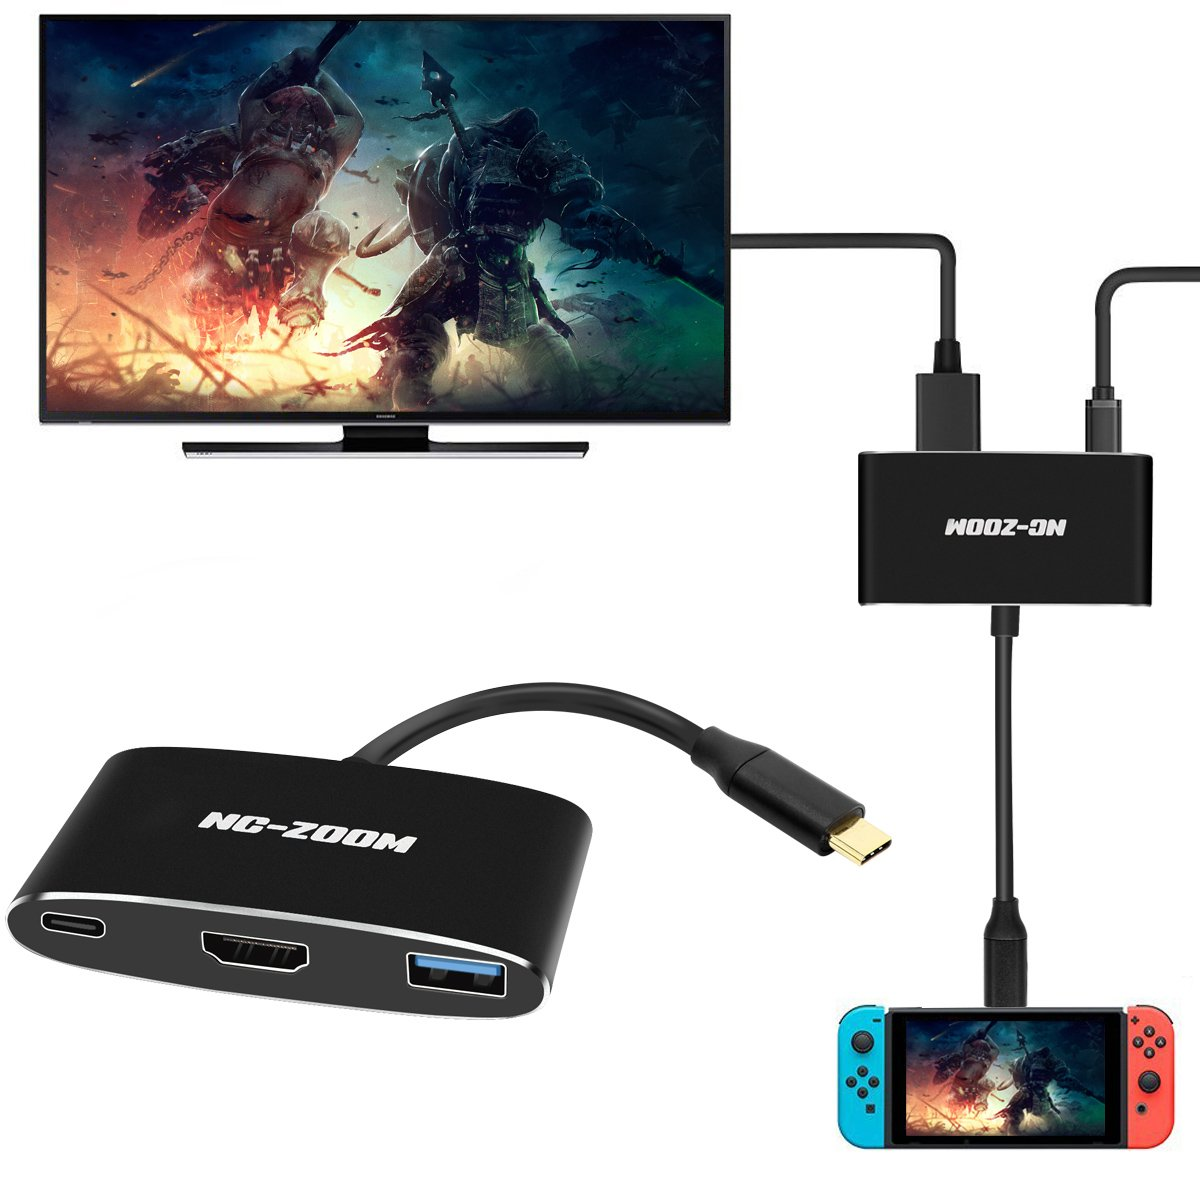 NC-ZOOM USB-C HDMI Adapter for Nintendo Switch,Type C USB to HDMI Converter Dock Cable for Nintendo Switch - Support MacBook Pro